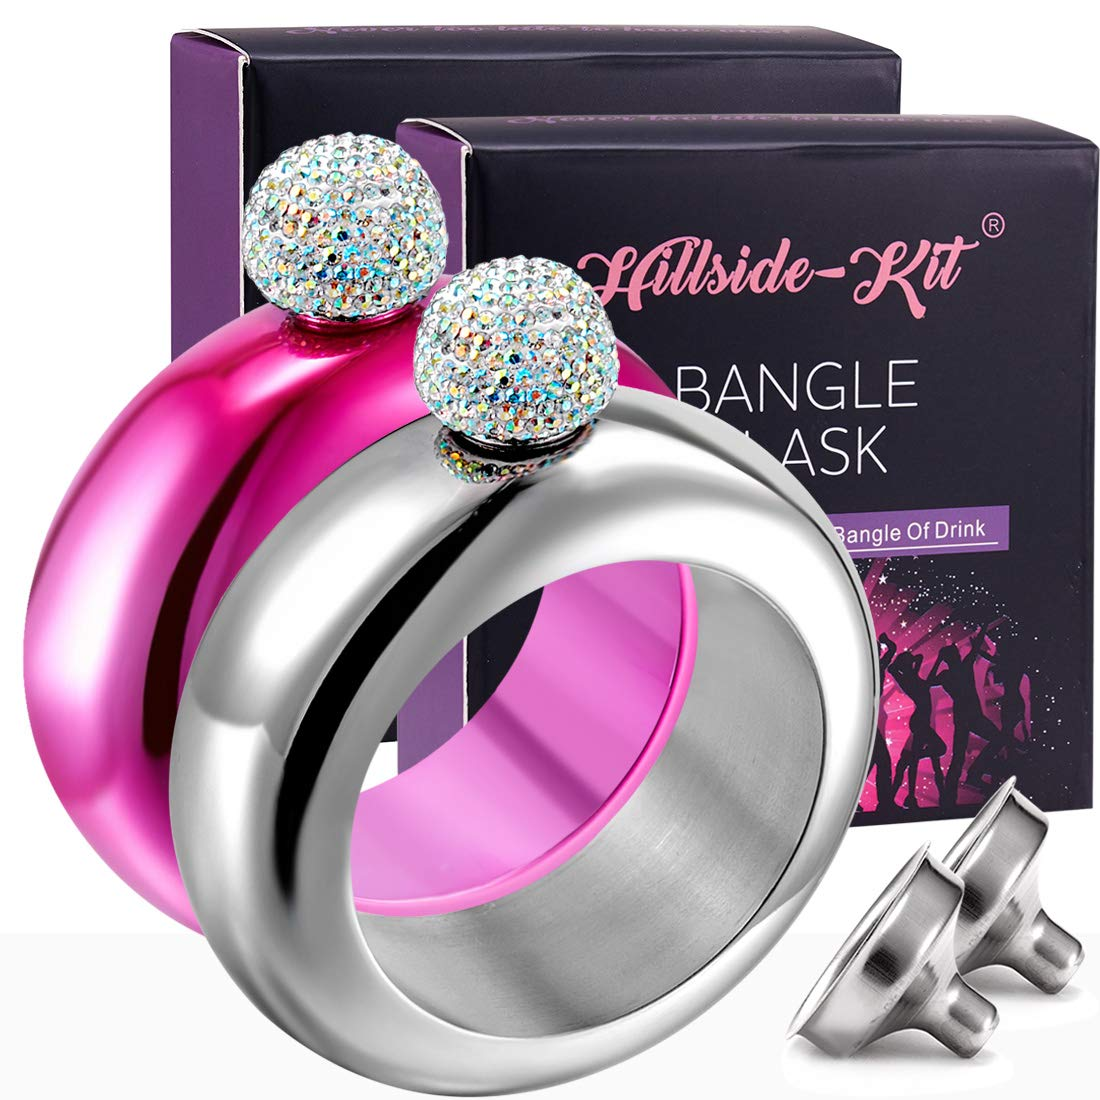 セール特価 (Silver Pink Flask Bracelet) for - Hillside-Kit Booze Flask Shot Flask AB Bangle Bracelet- AB Crystal Lid Creative 304 Stainless Steel Wine Alcohol Liquor Flask bracelet for Women Girls Party Flask Set 100ml-2PCS B07DJ845W2, ダーツハイブ カウントアップ店:cdf0f531 --- a0267596.xsph.ru